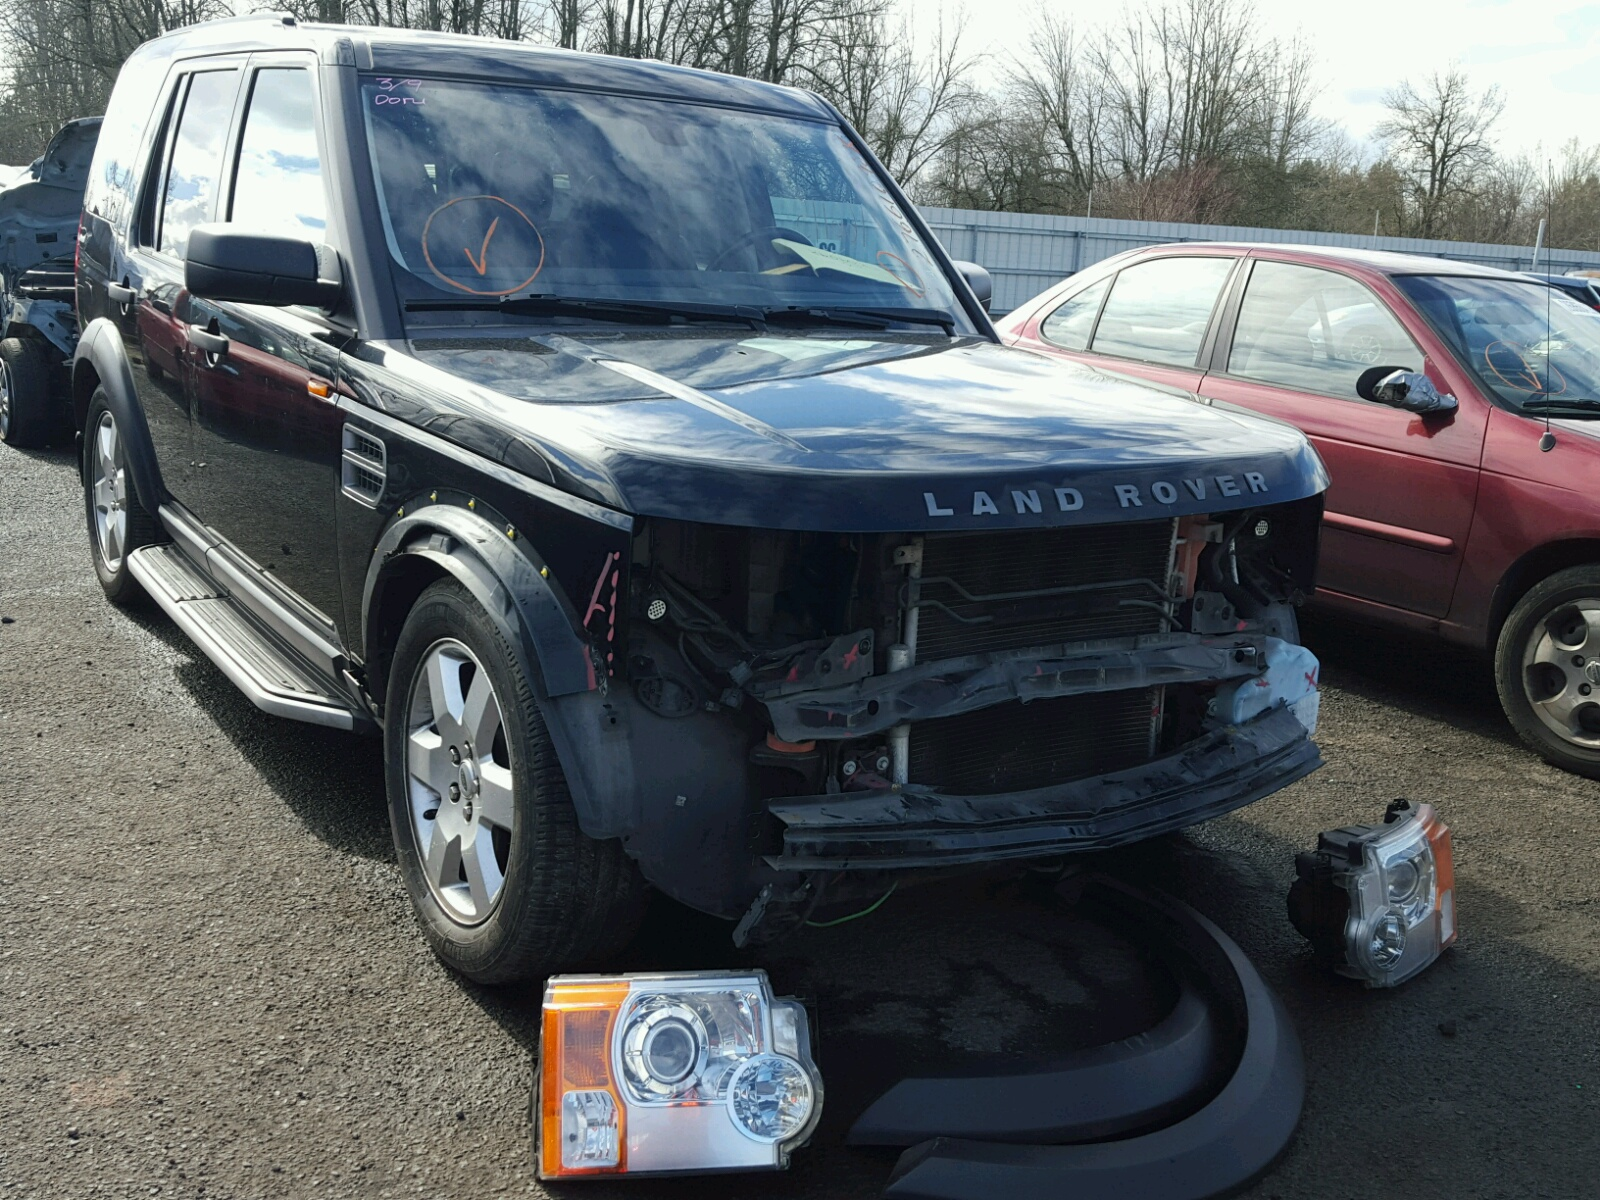 copart landrover rover right az salvage phoenix on land title lot for en sale cert silver carfinder auctions hse in view auto of online